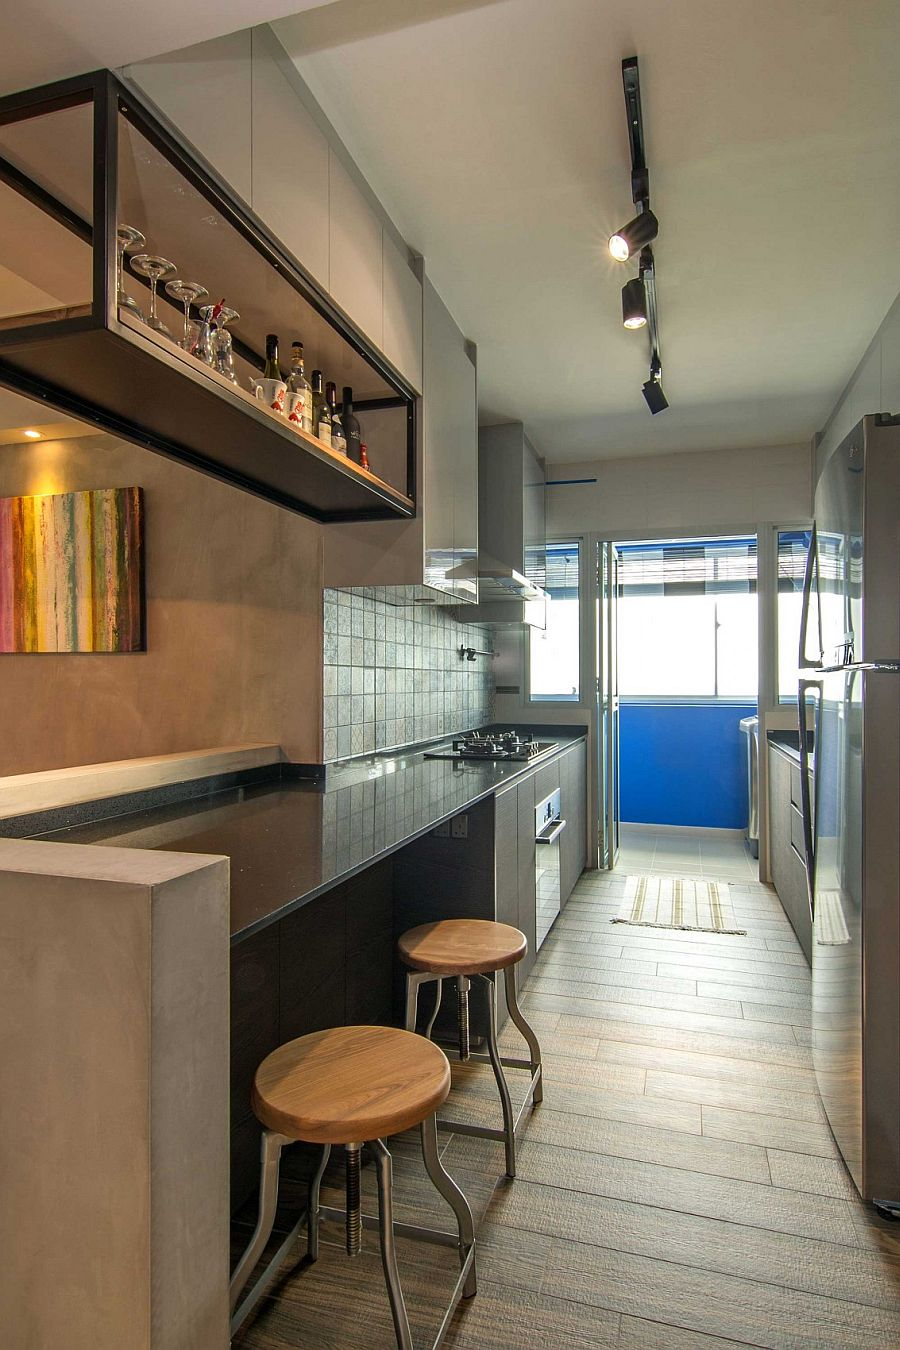 Making use of the vertical space on offer inside the small kitchen